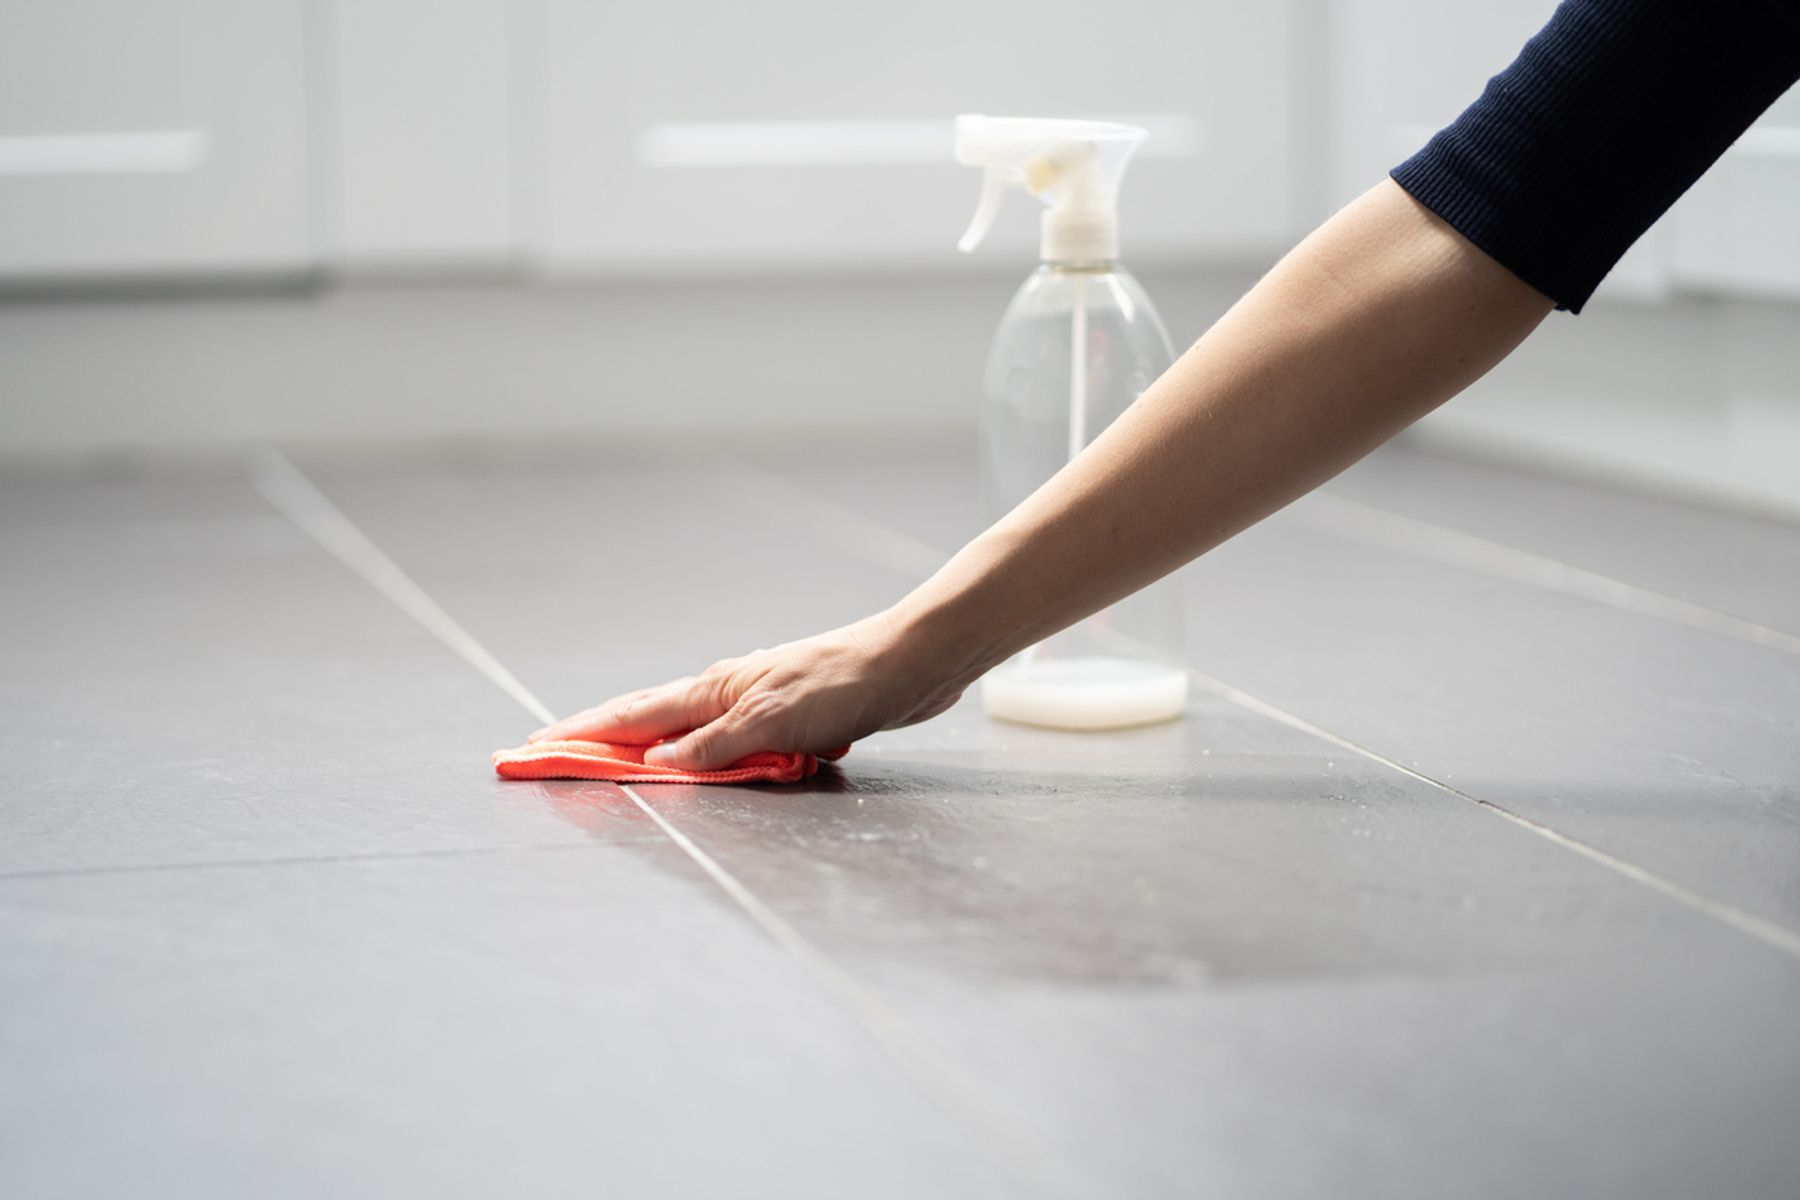 Hand wiping down floor tiles with a cloth